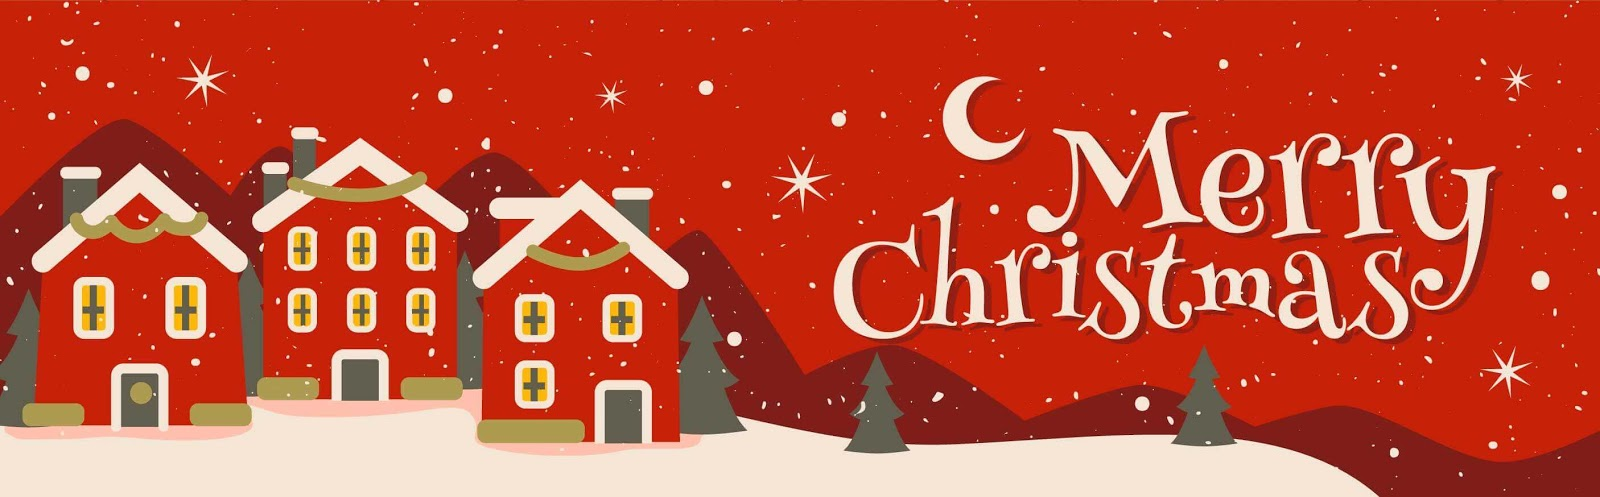 Christmas Template Download Free